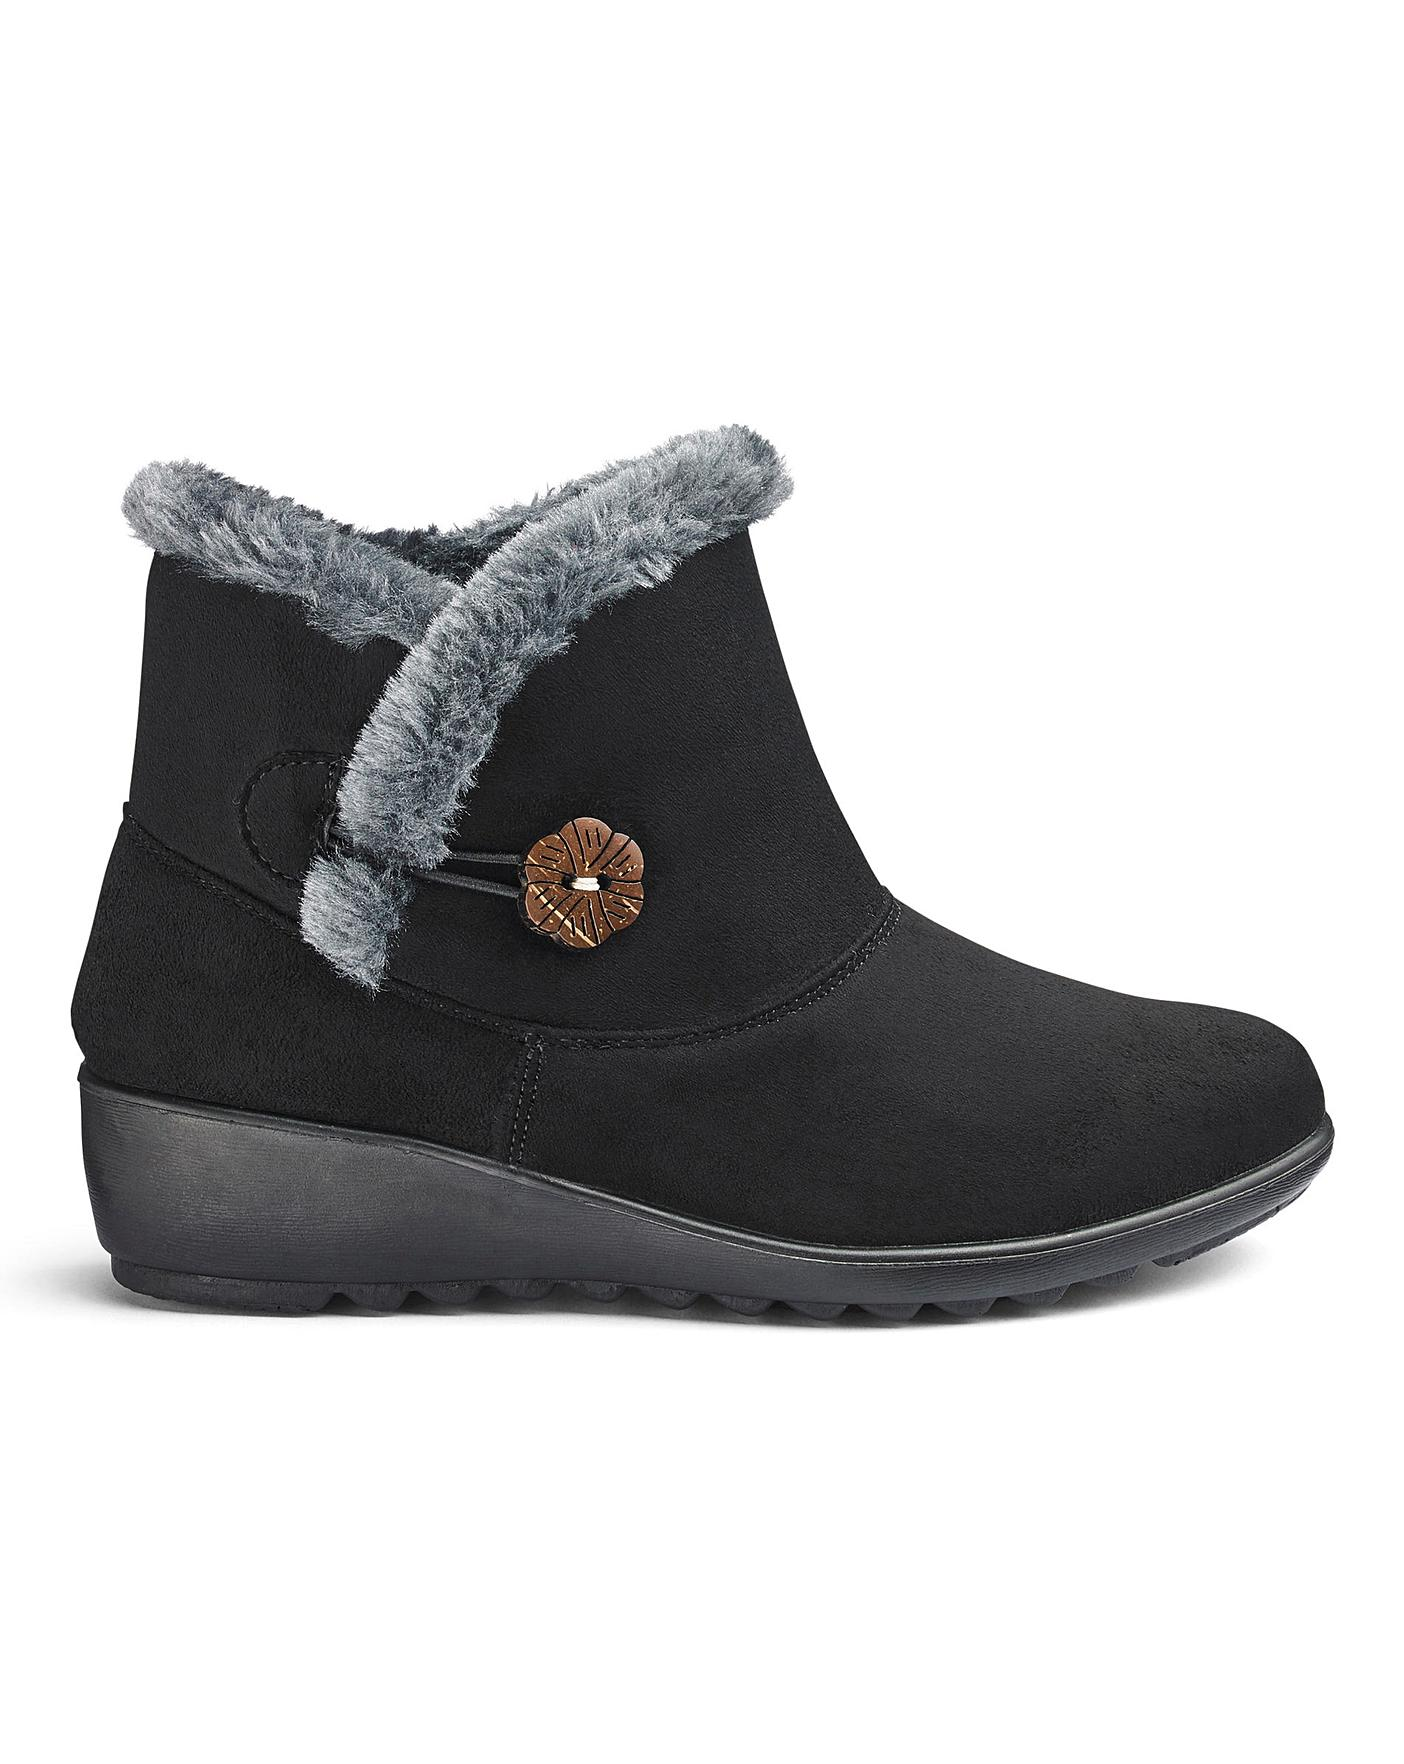 wholesale price factory price elegant shoes Cushion Walk Ankle Boots EEE Fit | Crazy Clearance